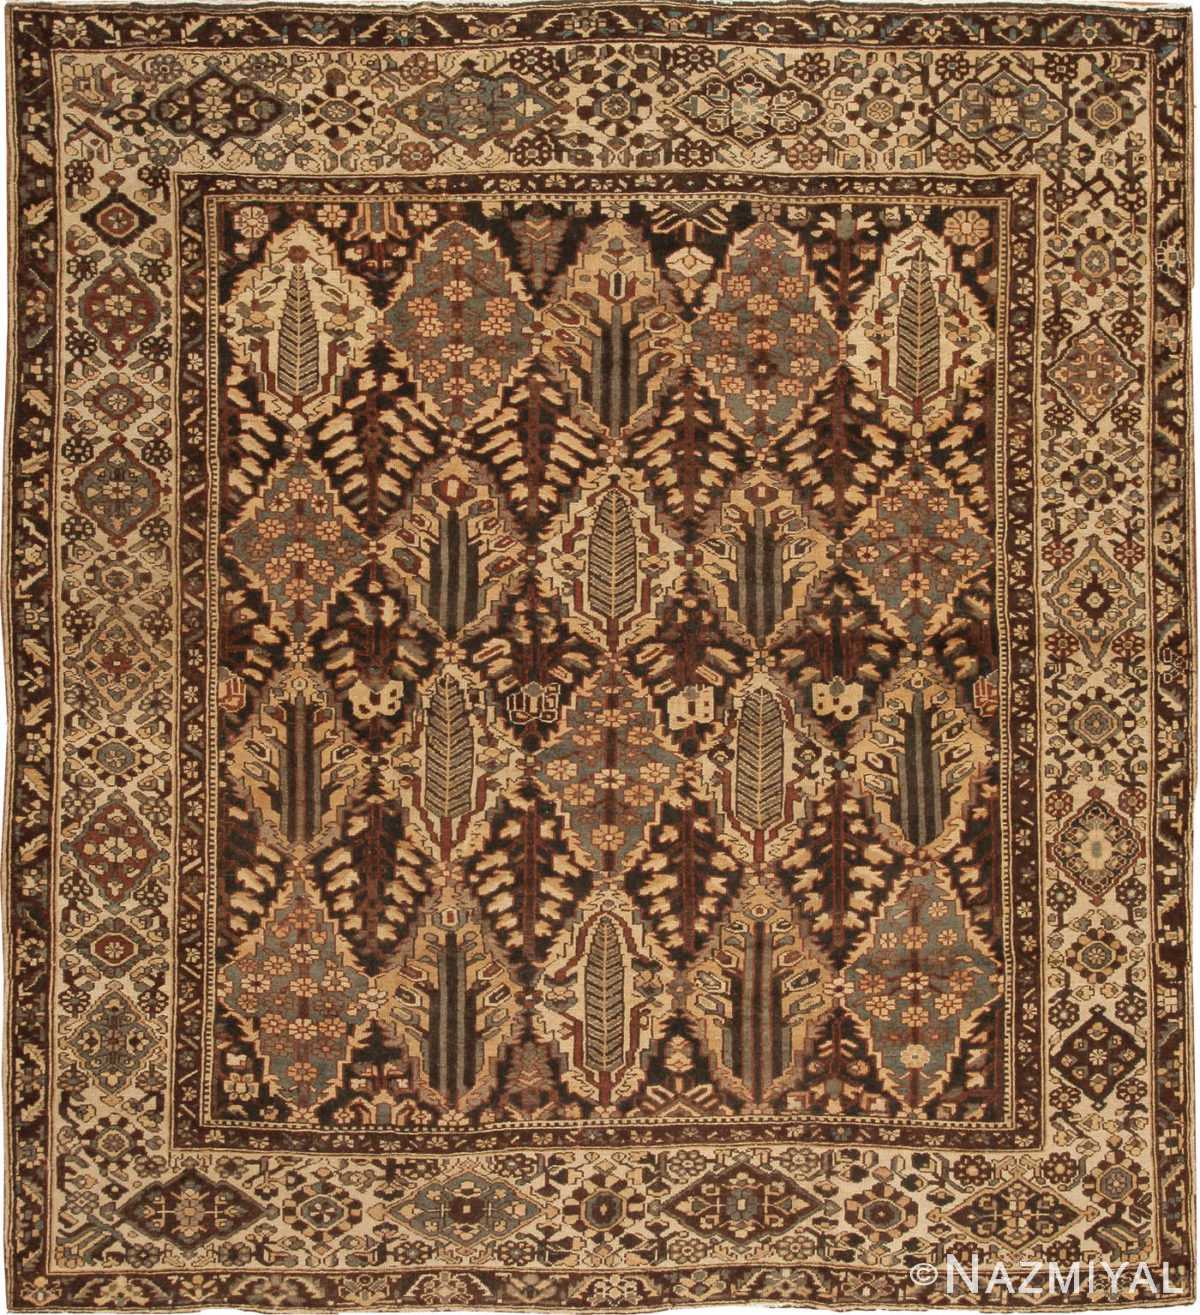 Vintage Persian Rugs: Bakhtiari Rug 42930 By The Nazmiyal Collection In New York